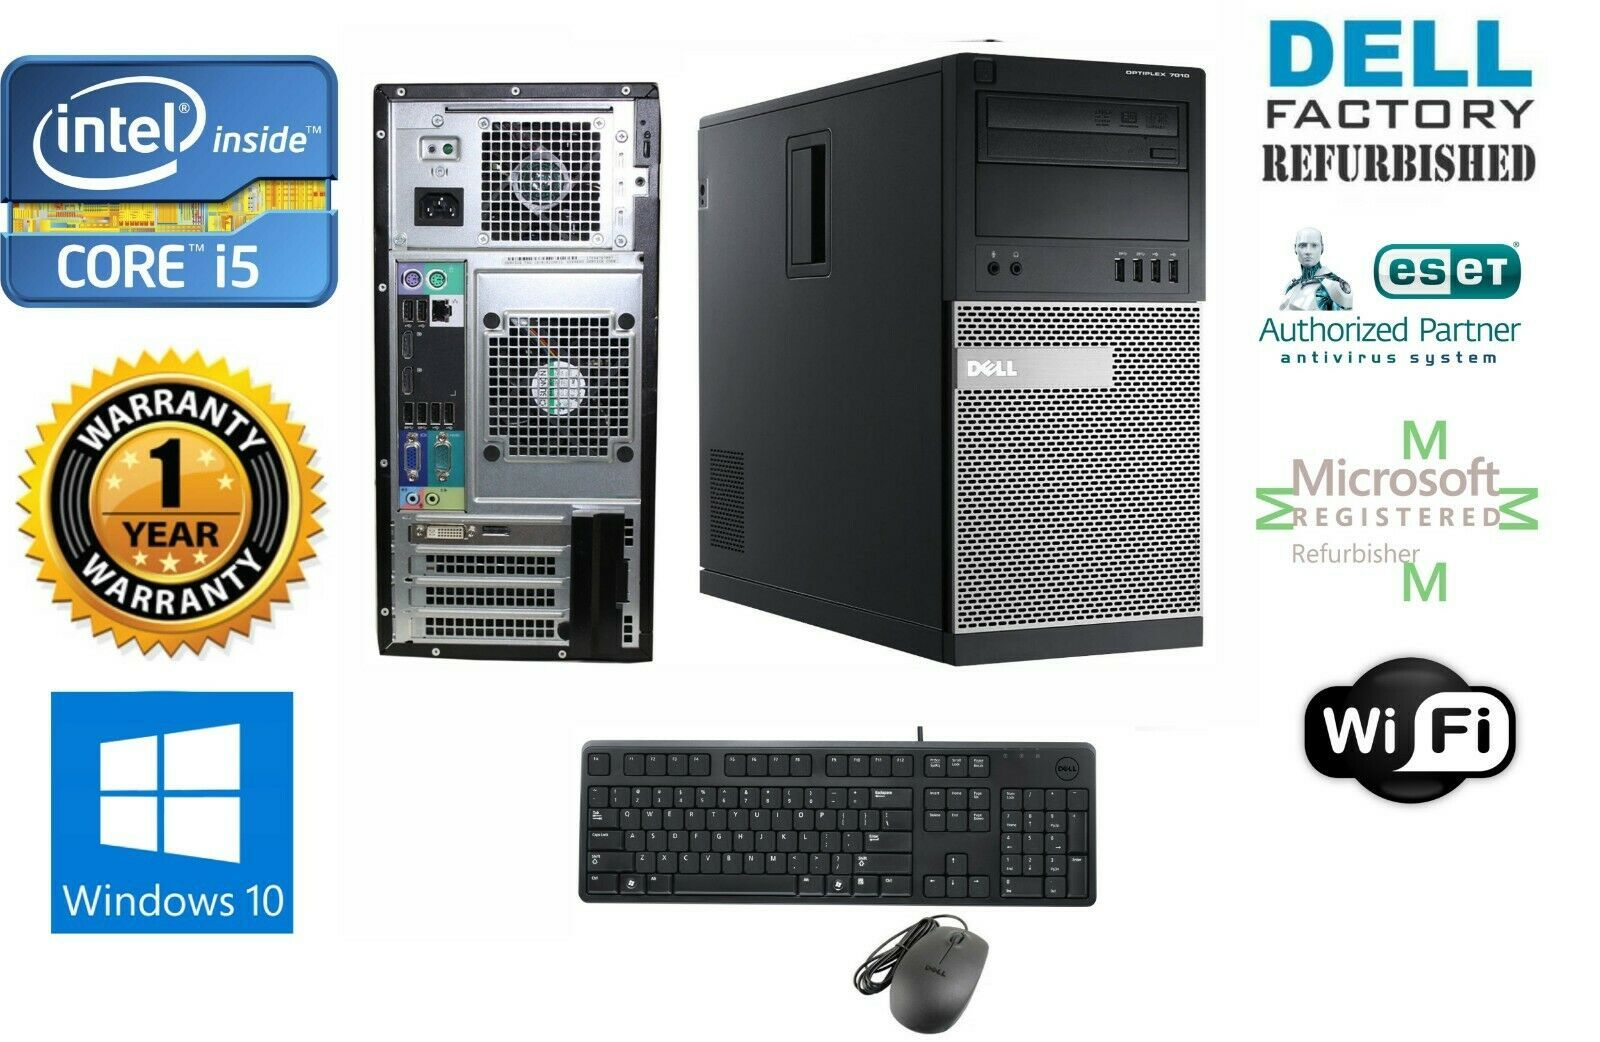 Dell Gaming TOWER PC i5 2500 Quad 3.3GHz 16GB 120GB SSD Win 10 Pro 64 HDMI-VGA - $268.27